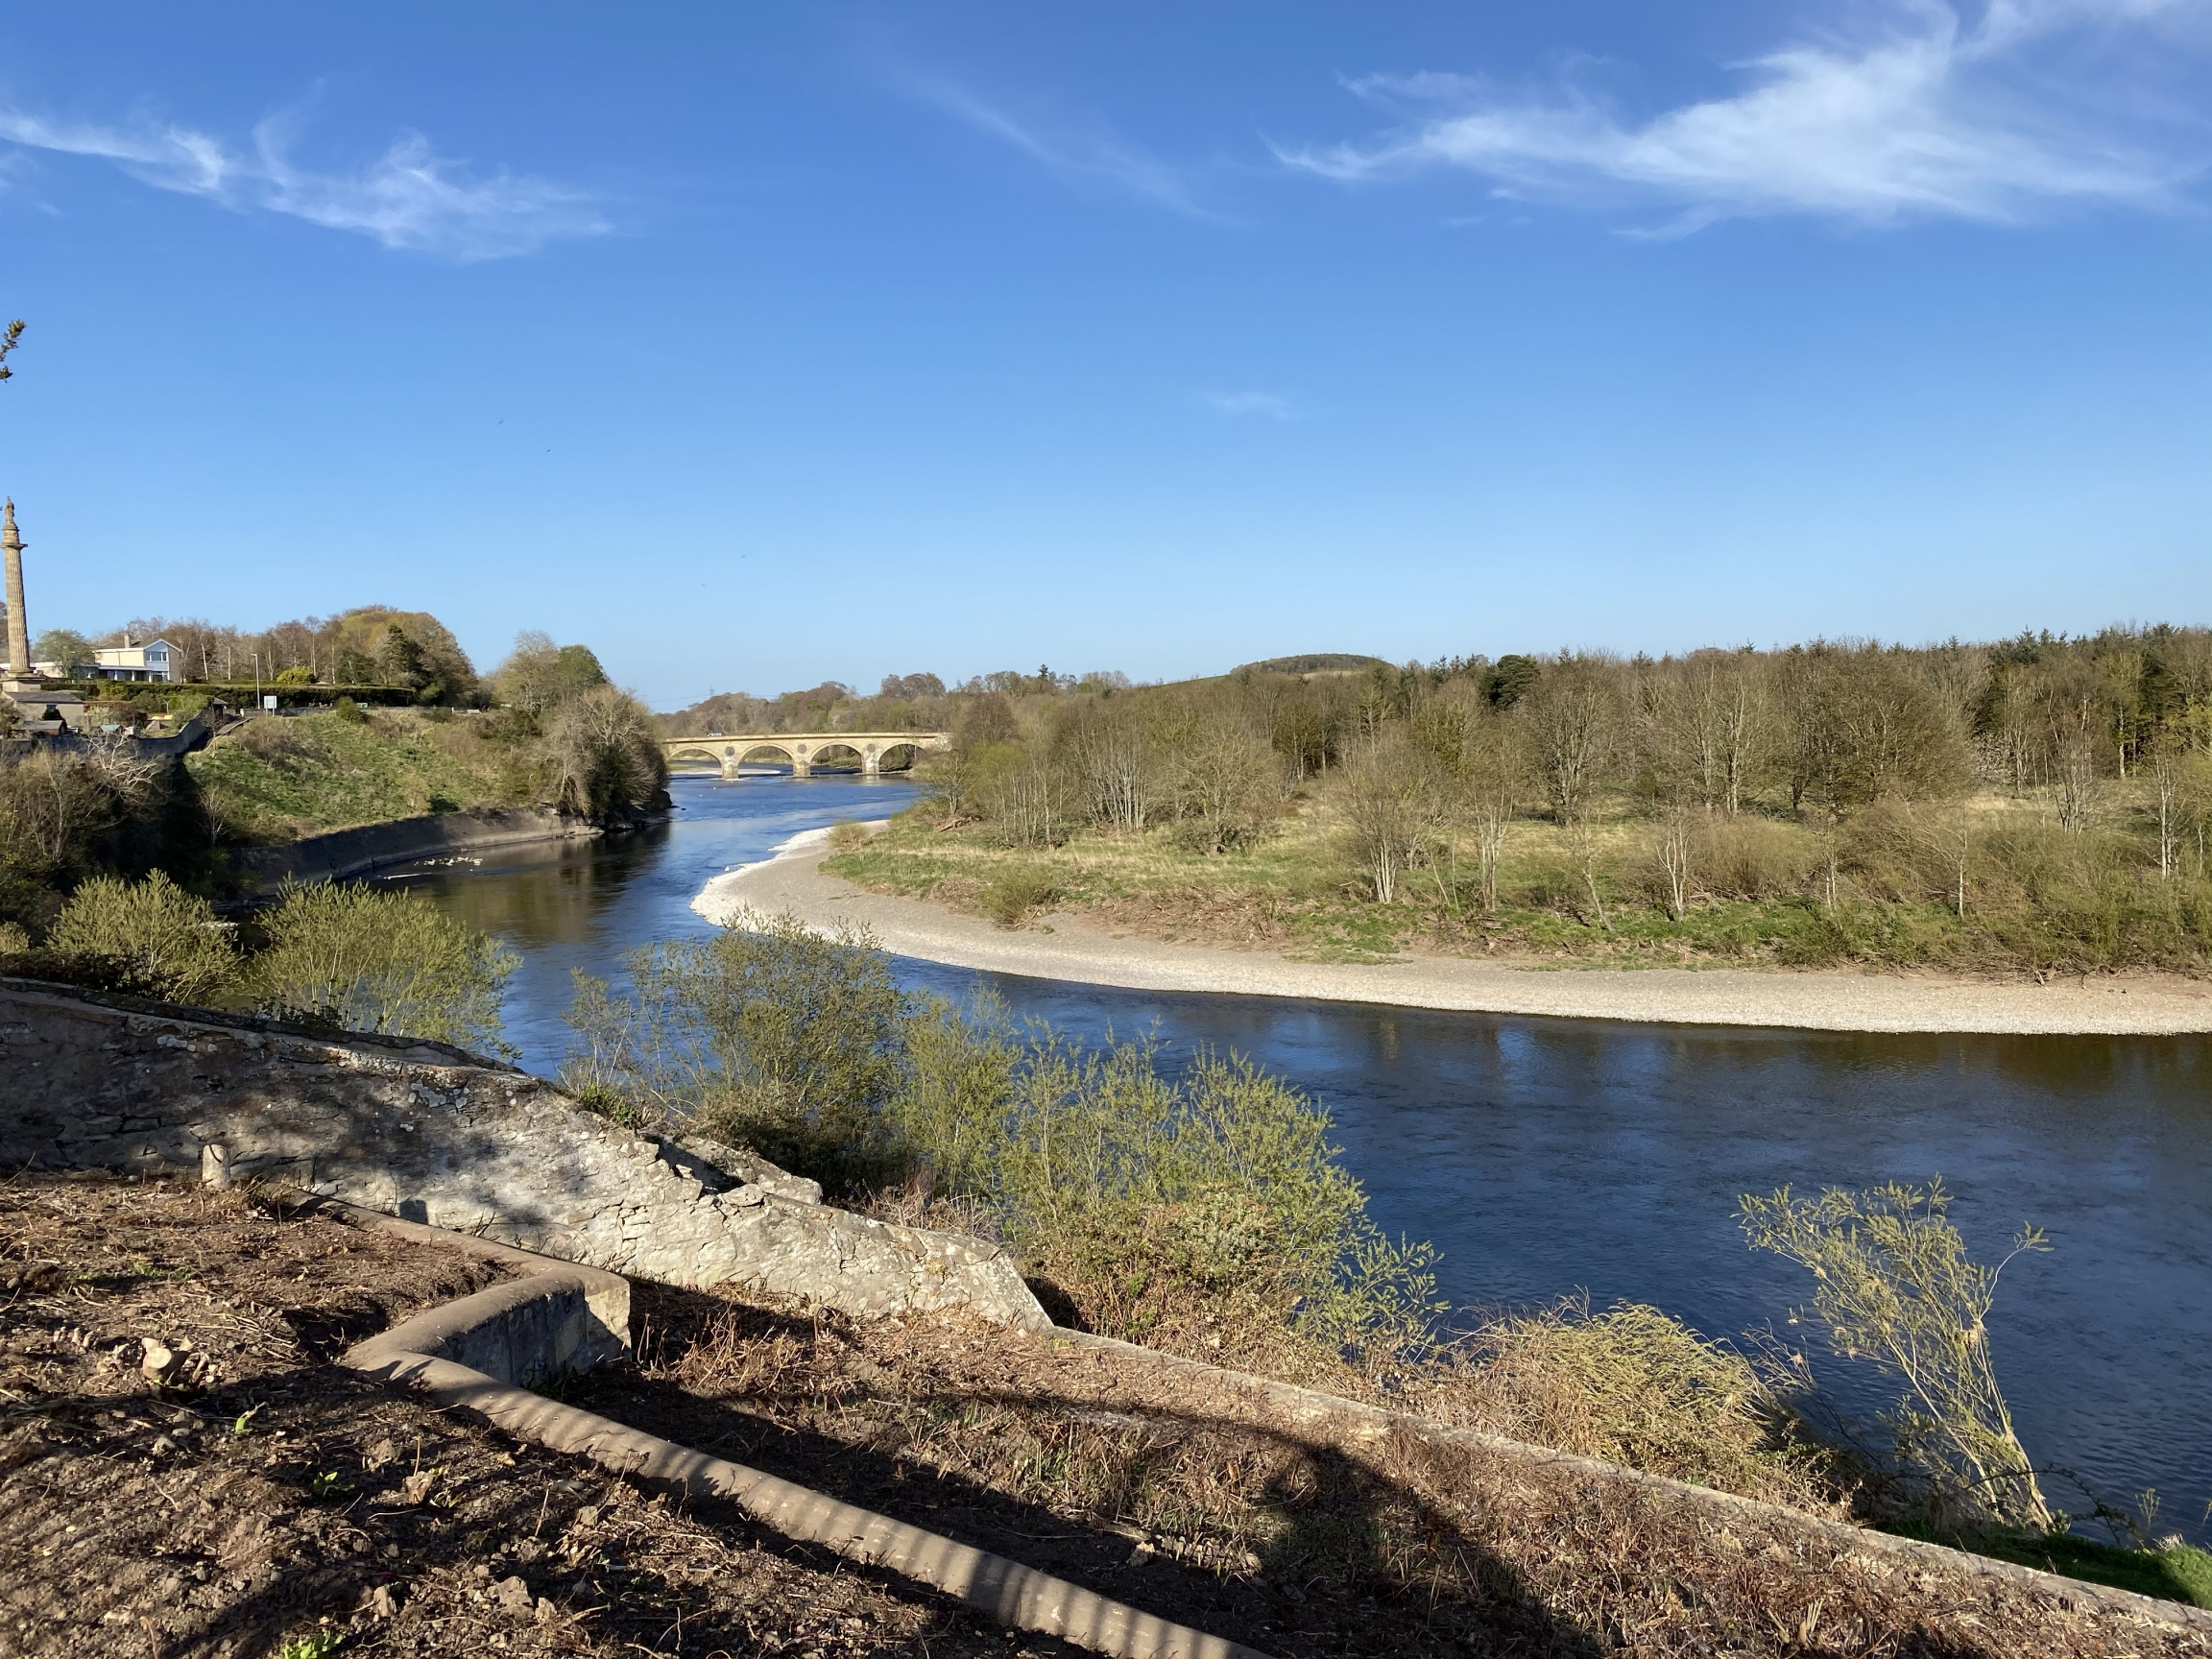 The bridge passing over the River Tweed, demarcating the border between England and Scotland.